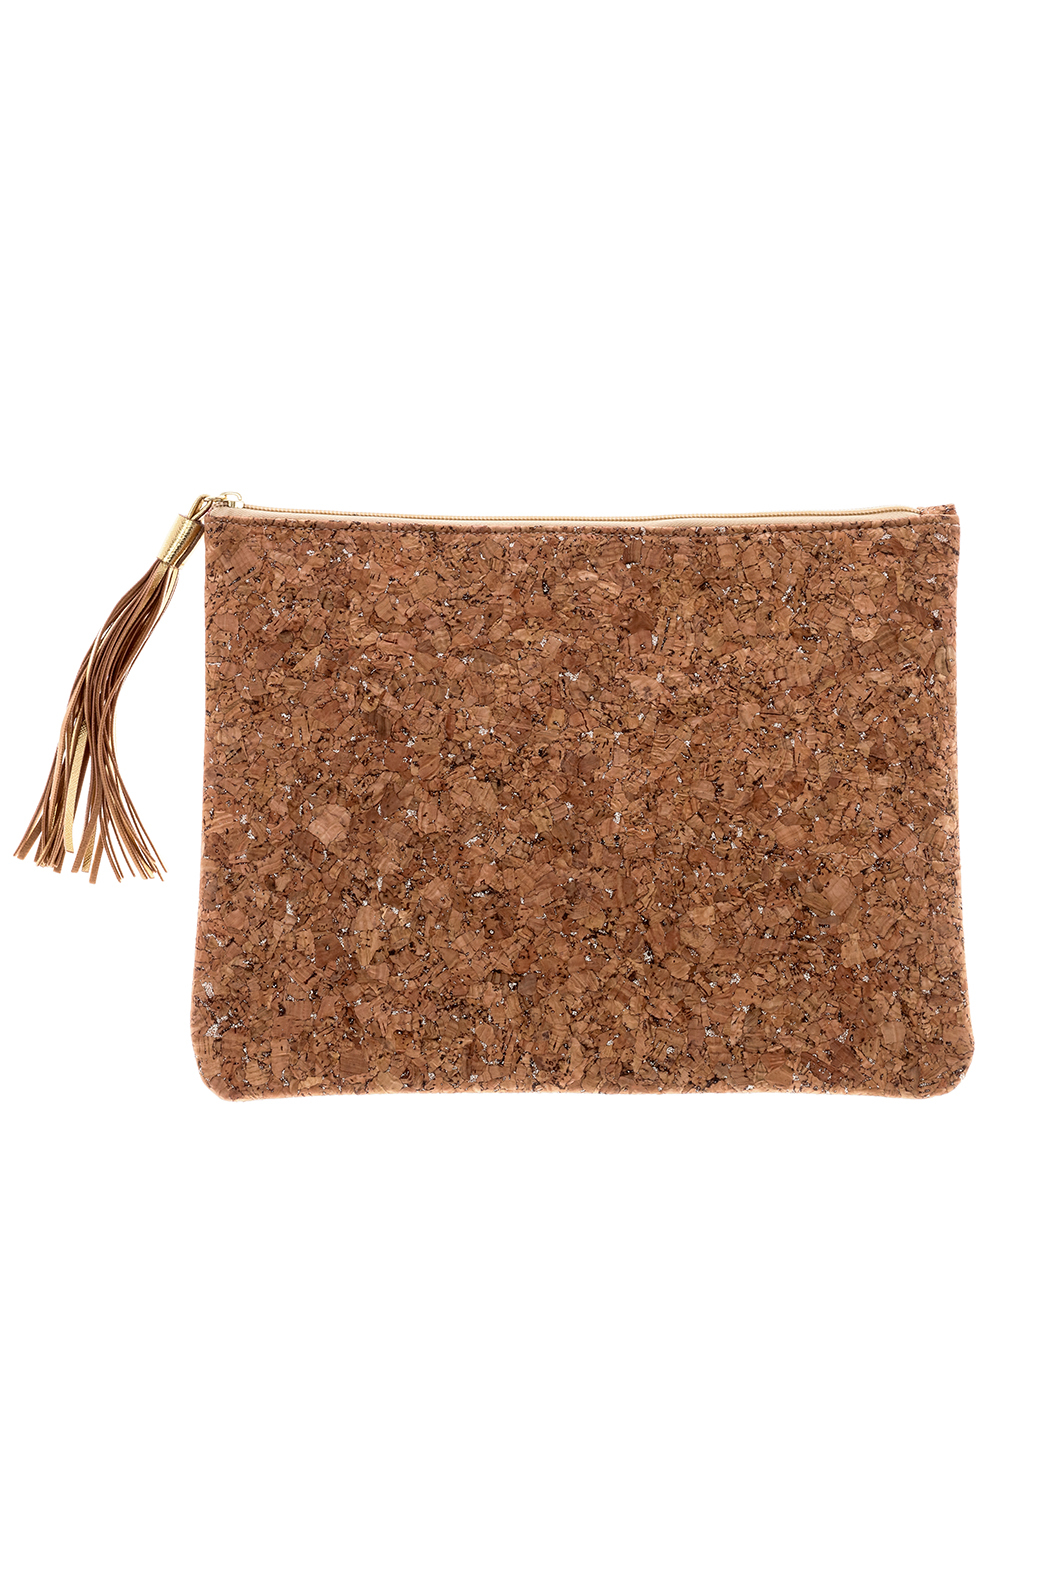 Mud Pie Cork Clutch   Front Cropped Image